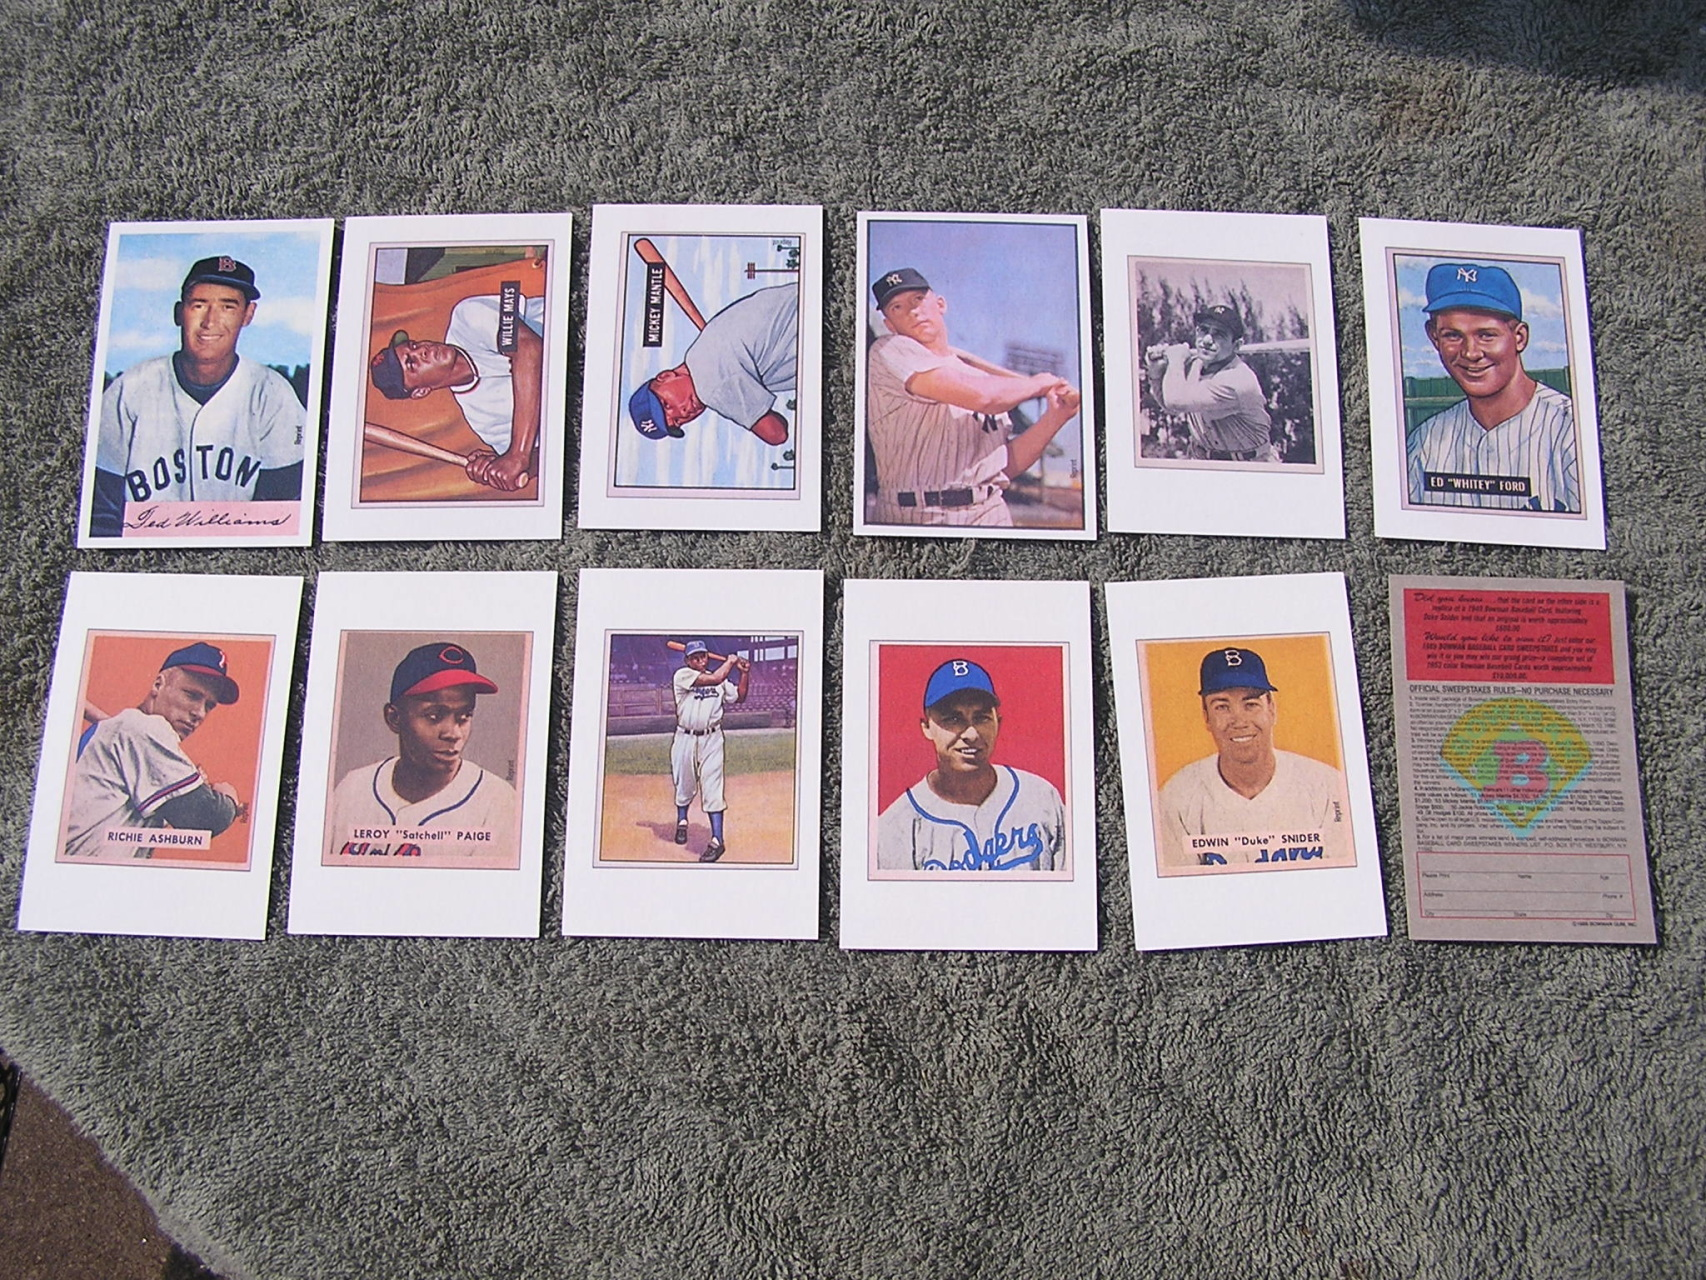 1984 1989 Baseball Trading Cards Sets For Sale Baseball